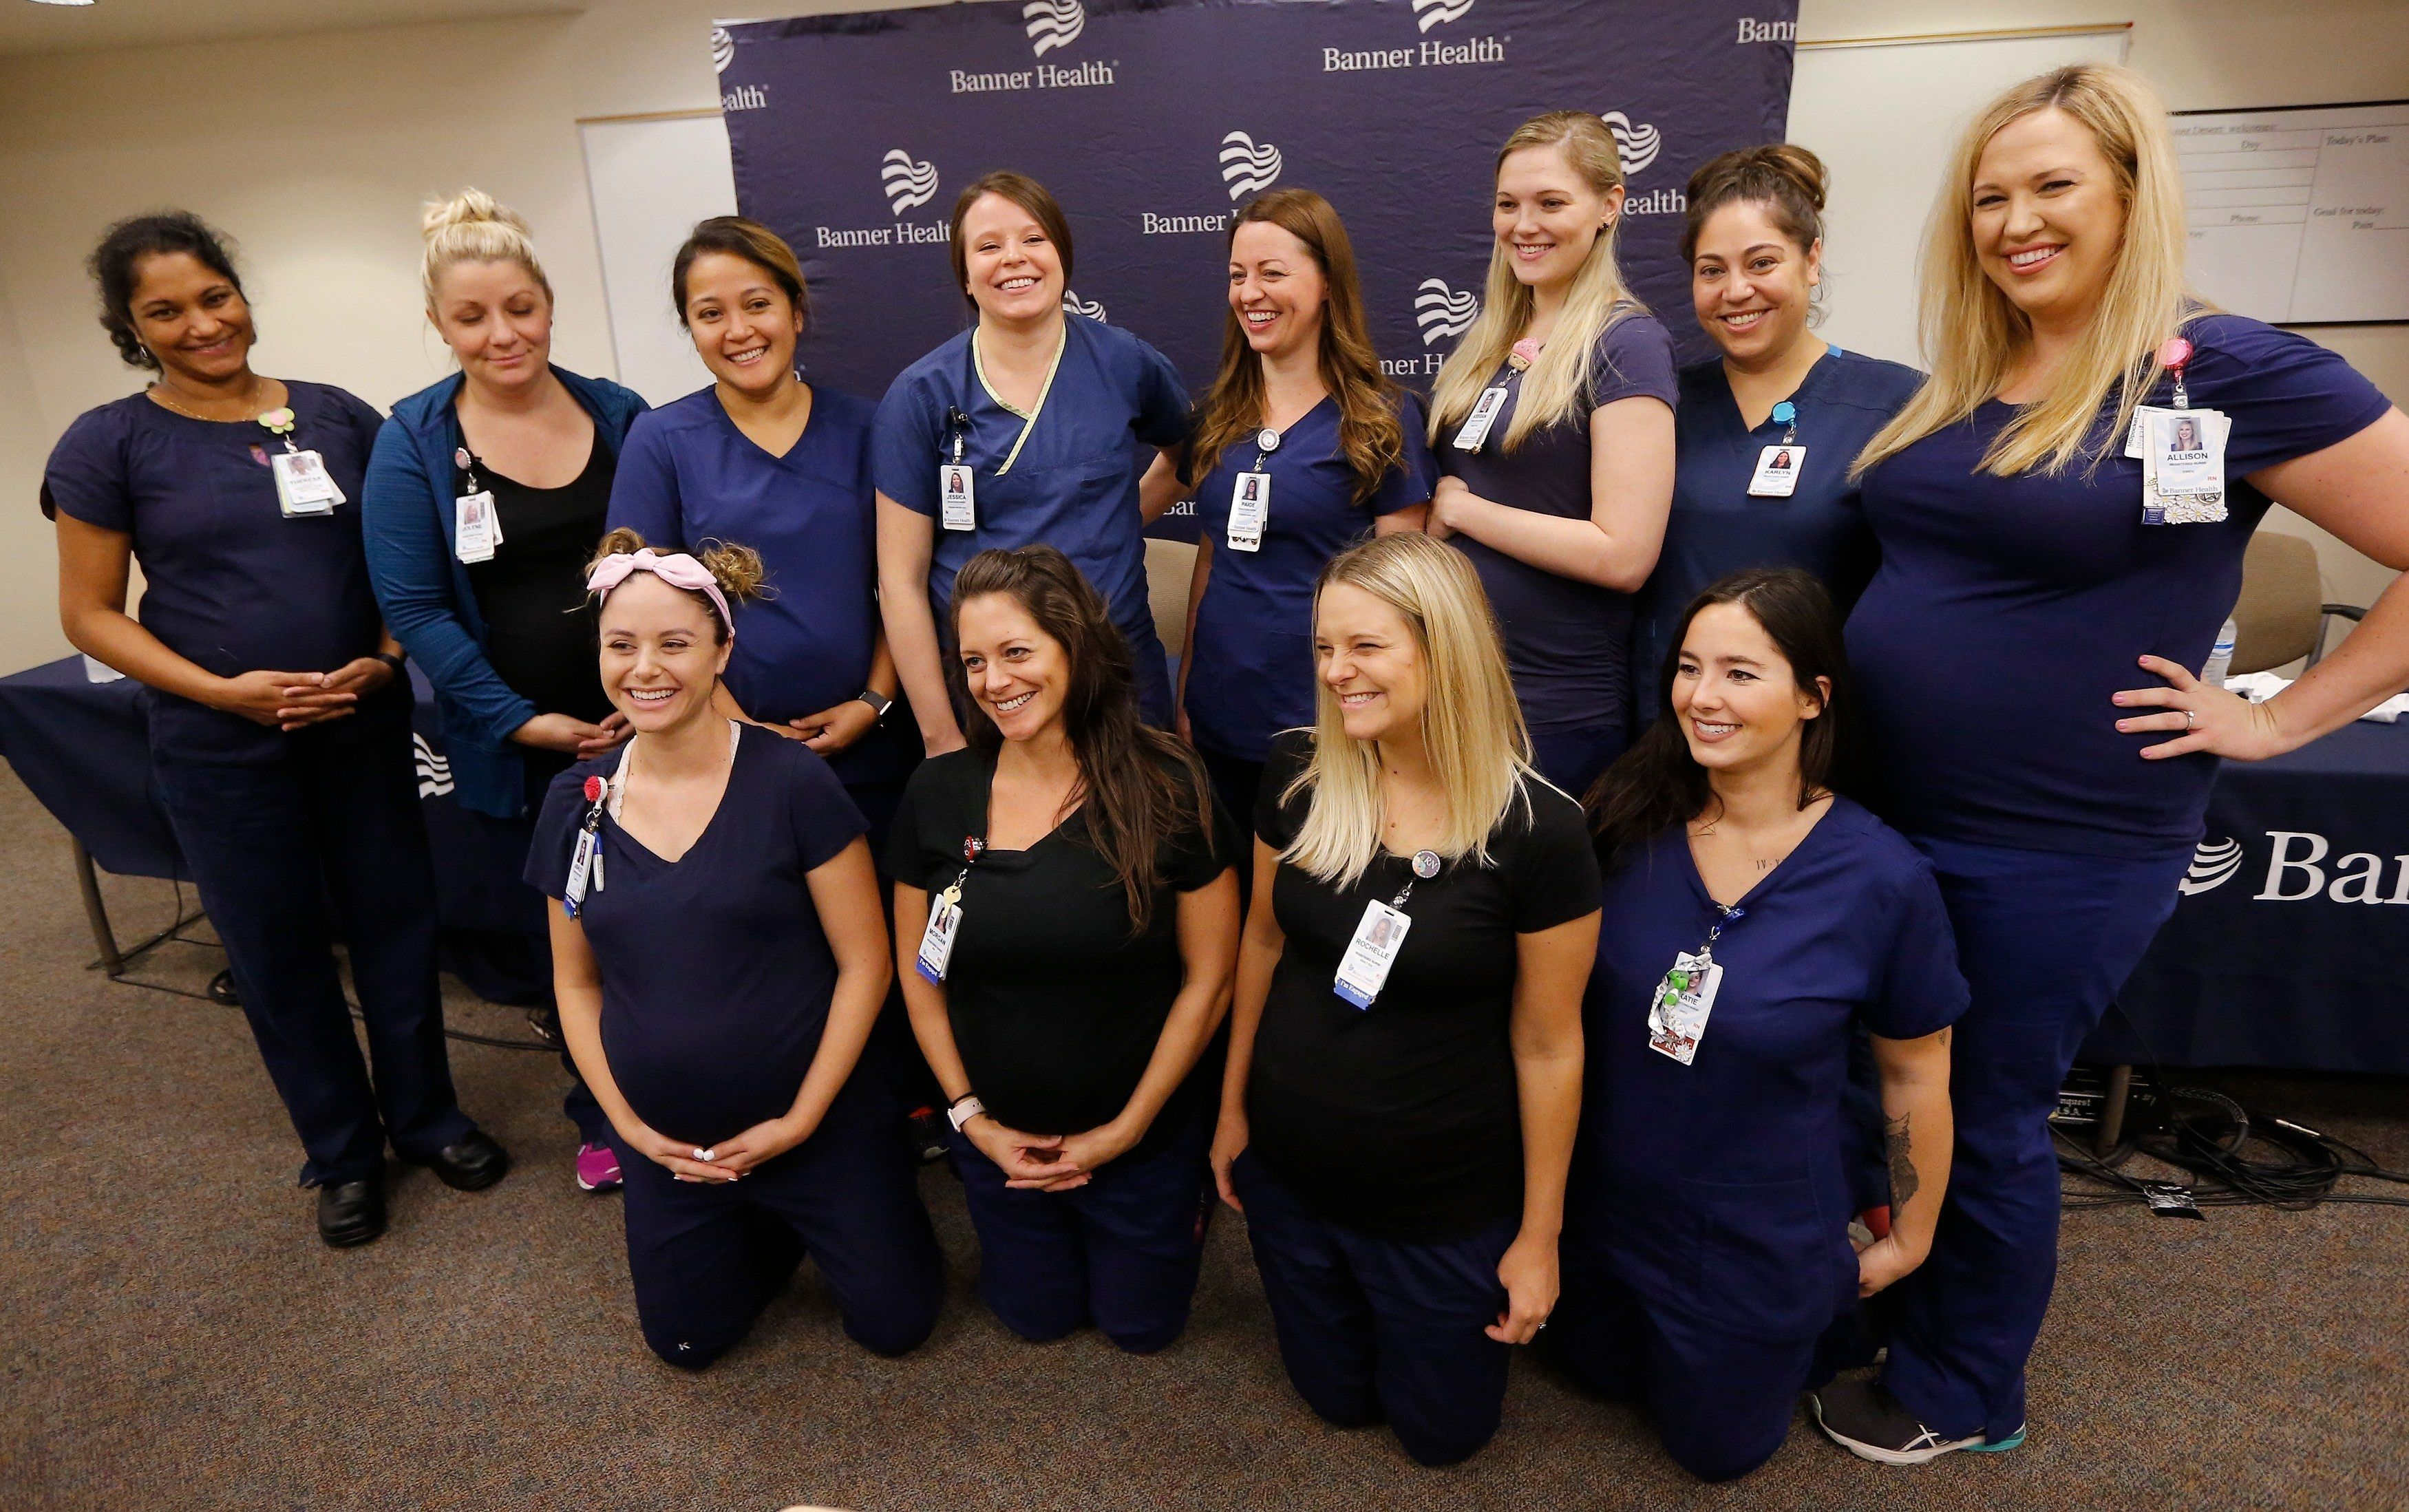 Twelve of the 16 pregnant nurses pose for a photograph after a press conference on Aug. 17, 2018.